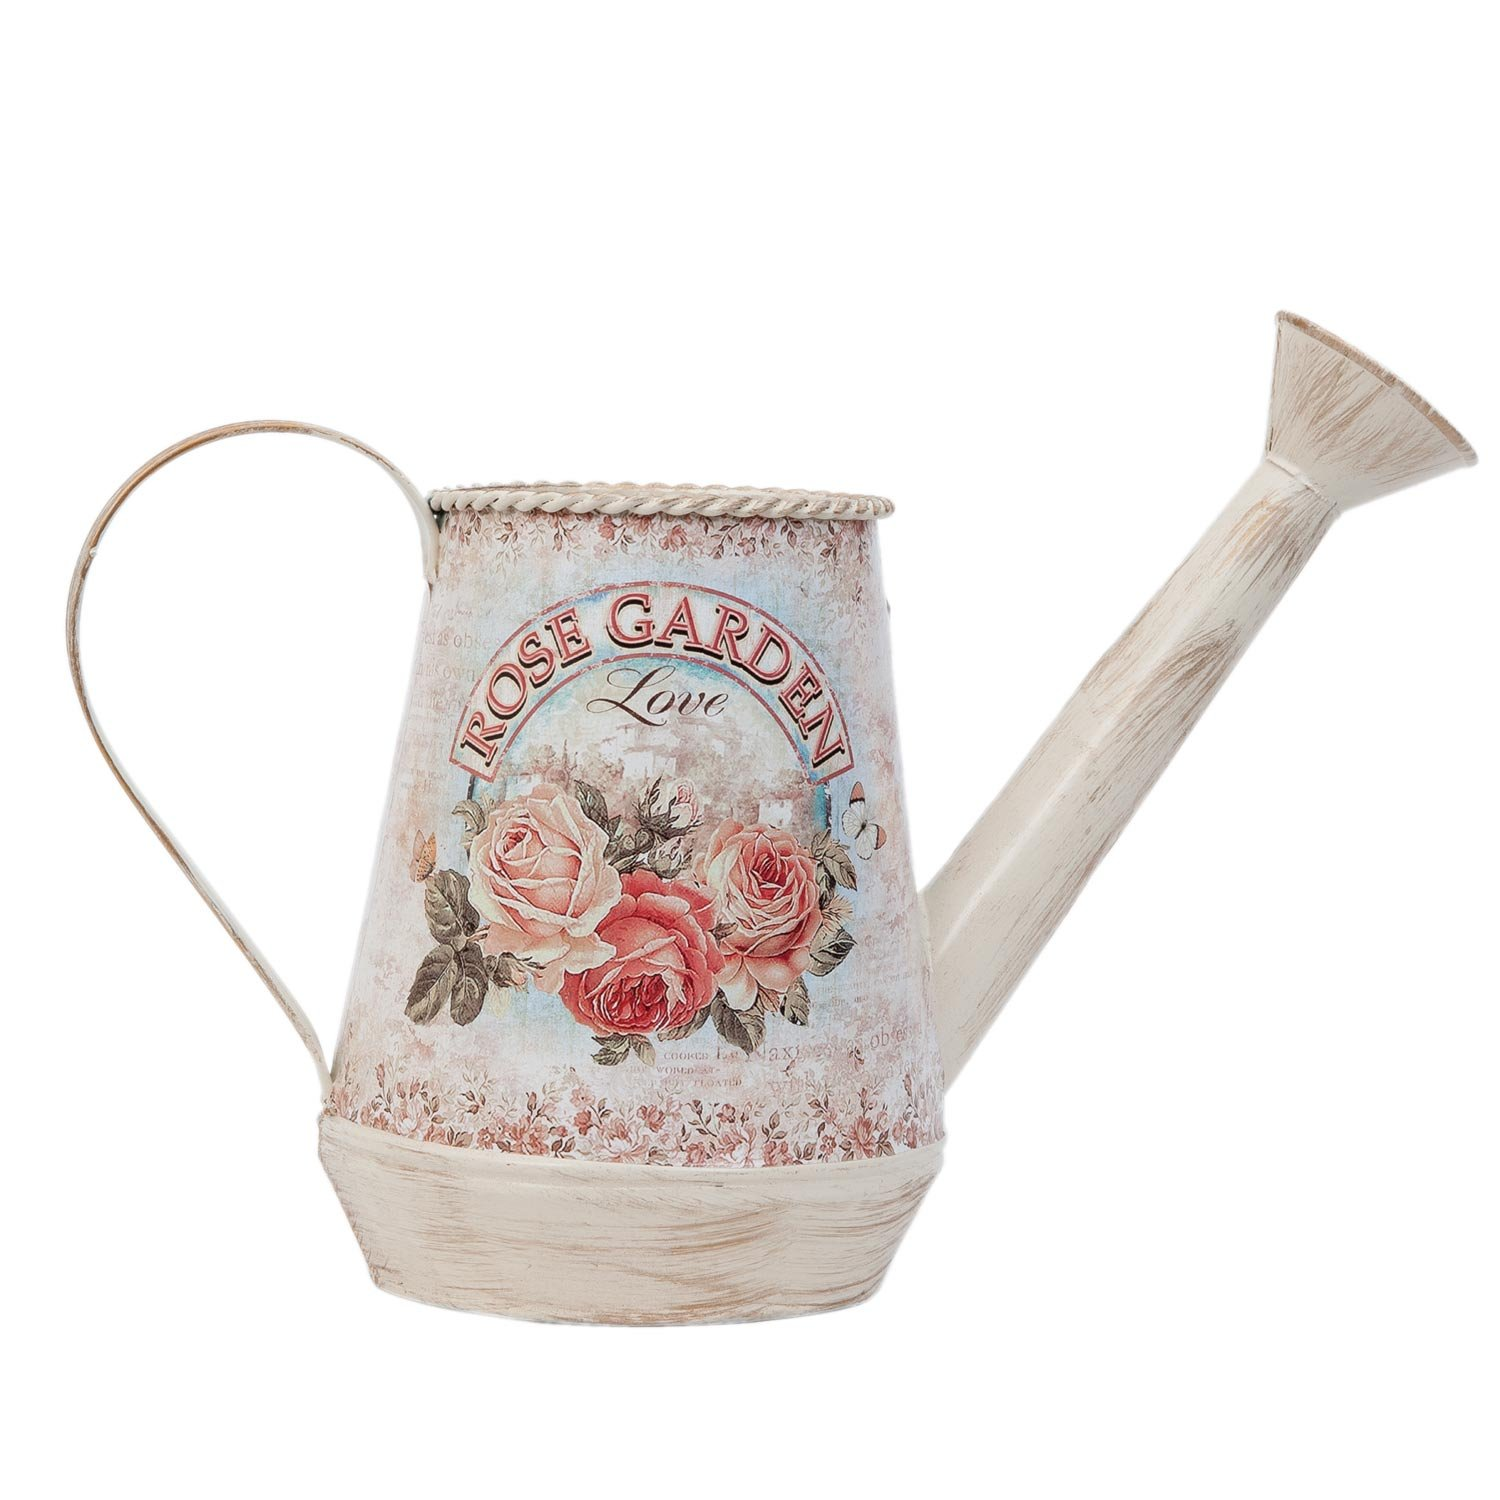 Clayre & Eef 63326Decorative Watering Can Watering Can Pink Garden Love Approx. 29x 9x 16cm